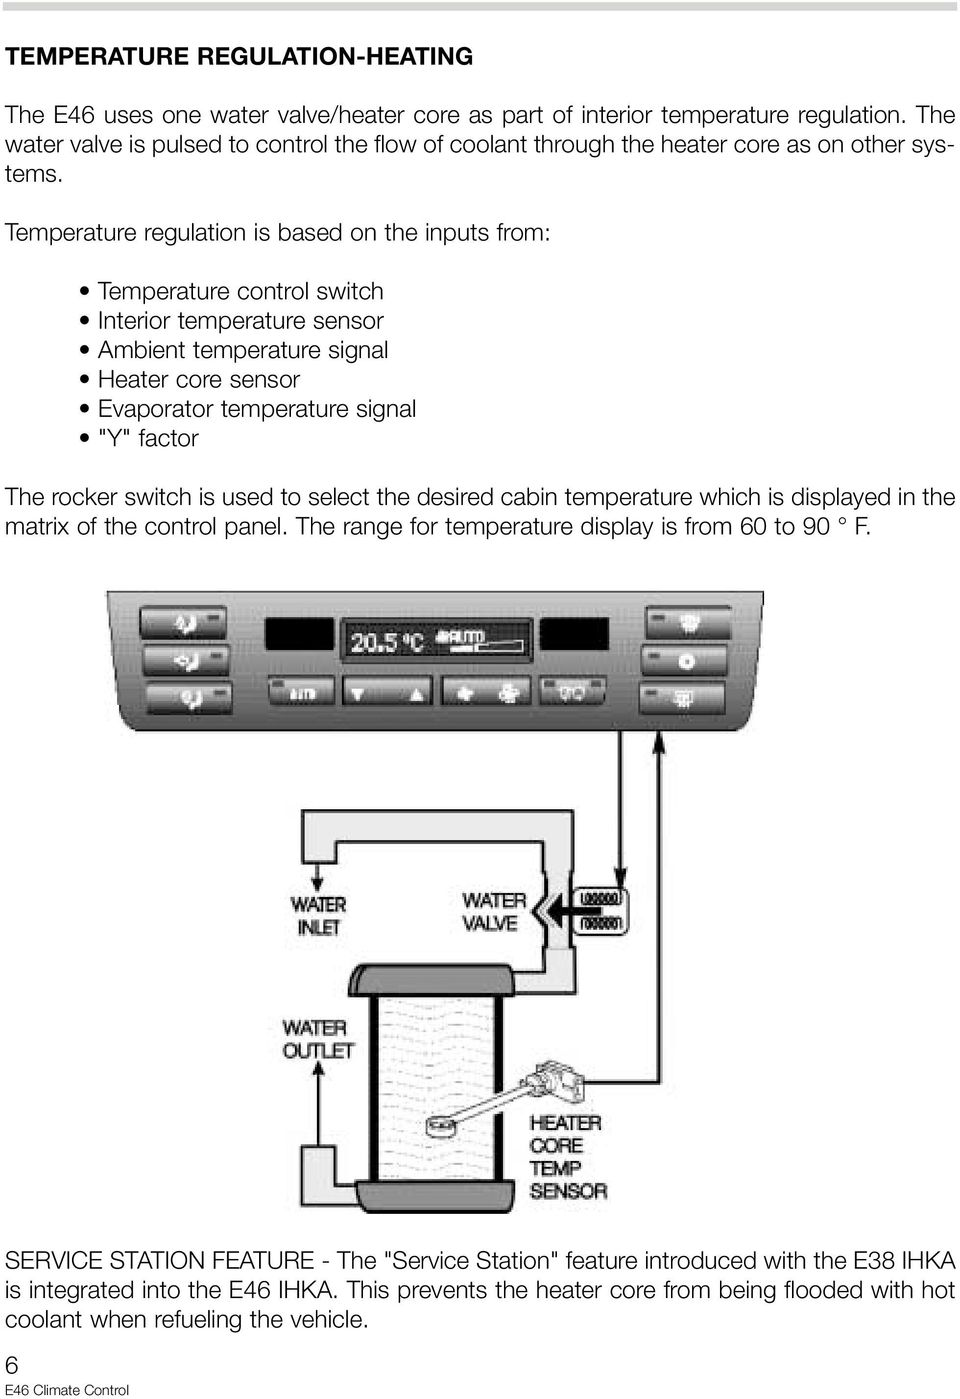 E46 ihka control panel fresh air micro filter temperature regulation temperature regulation is based on the inputs from temperature control switch interior temperature sensor ambient swarovskicordoba Image collections